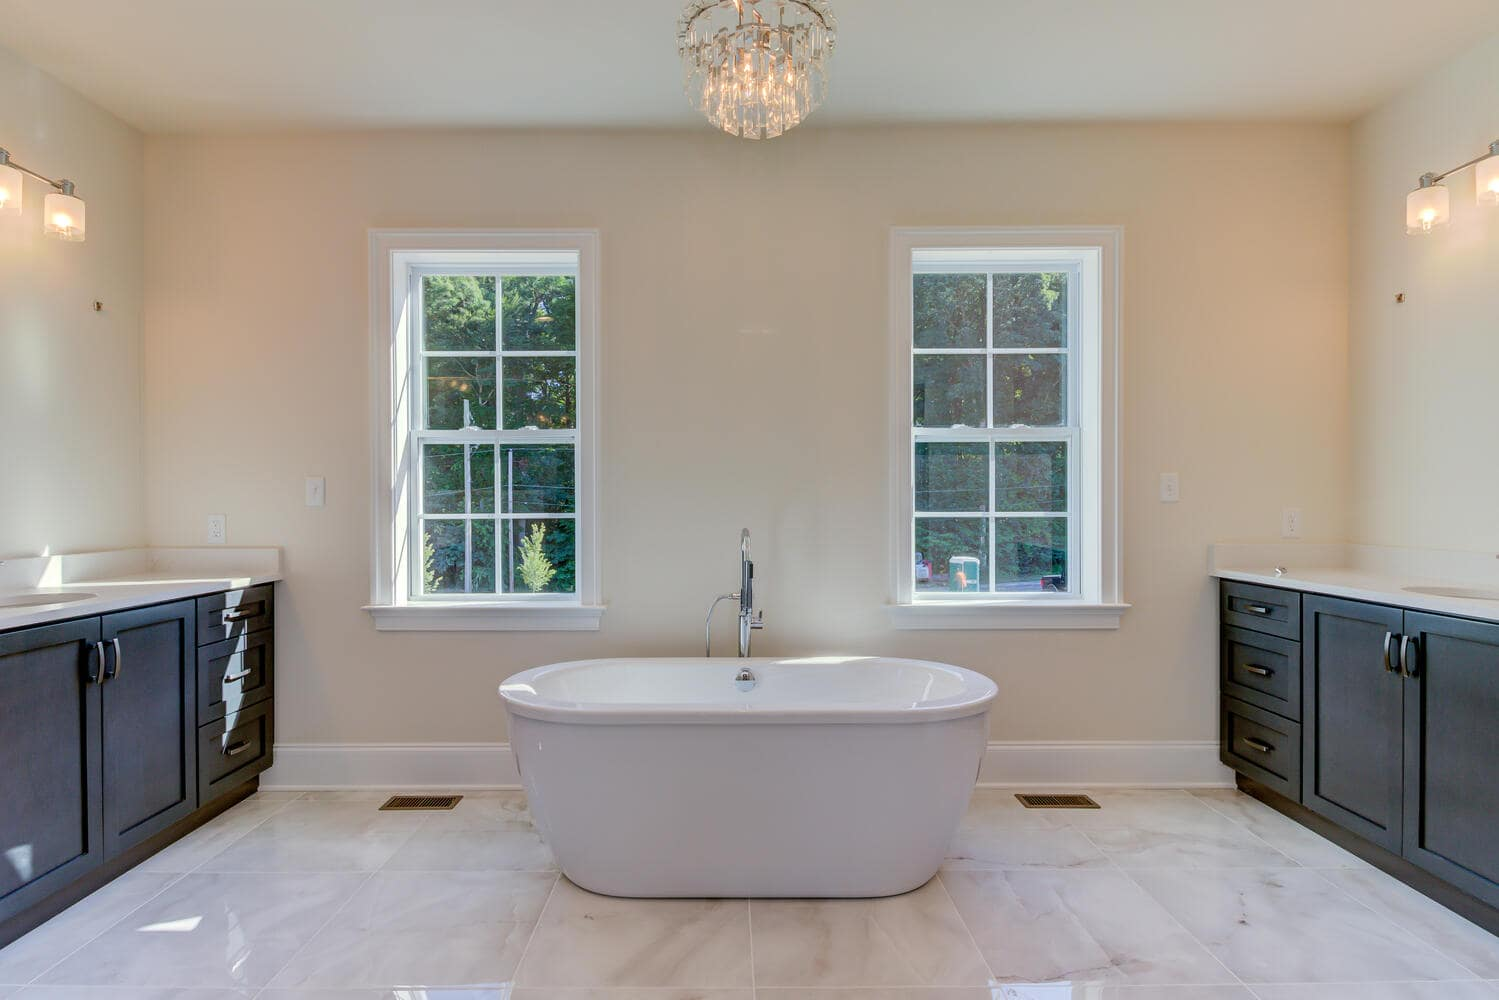 Bathroom tub in a new home from Bentley Homes.